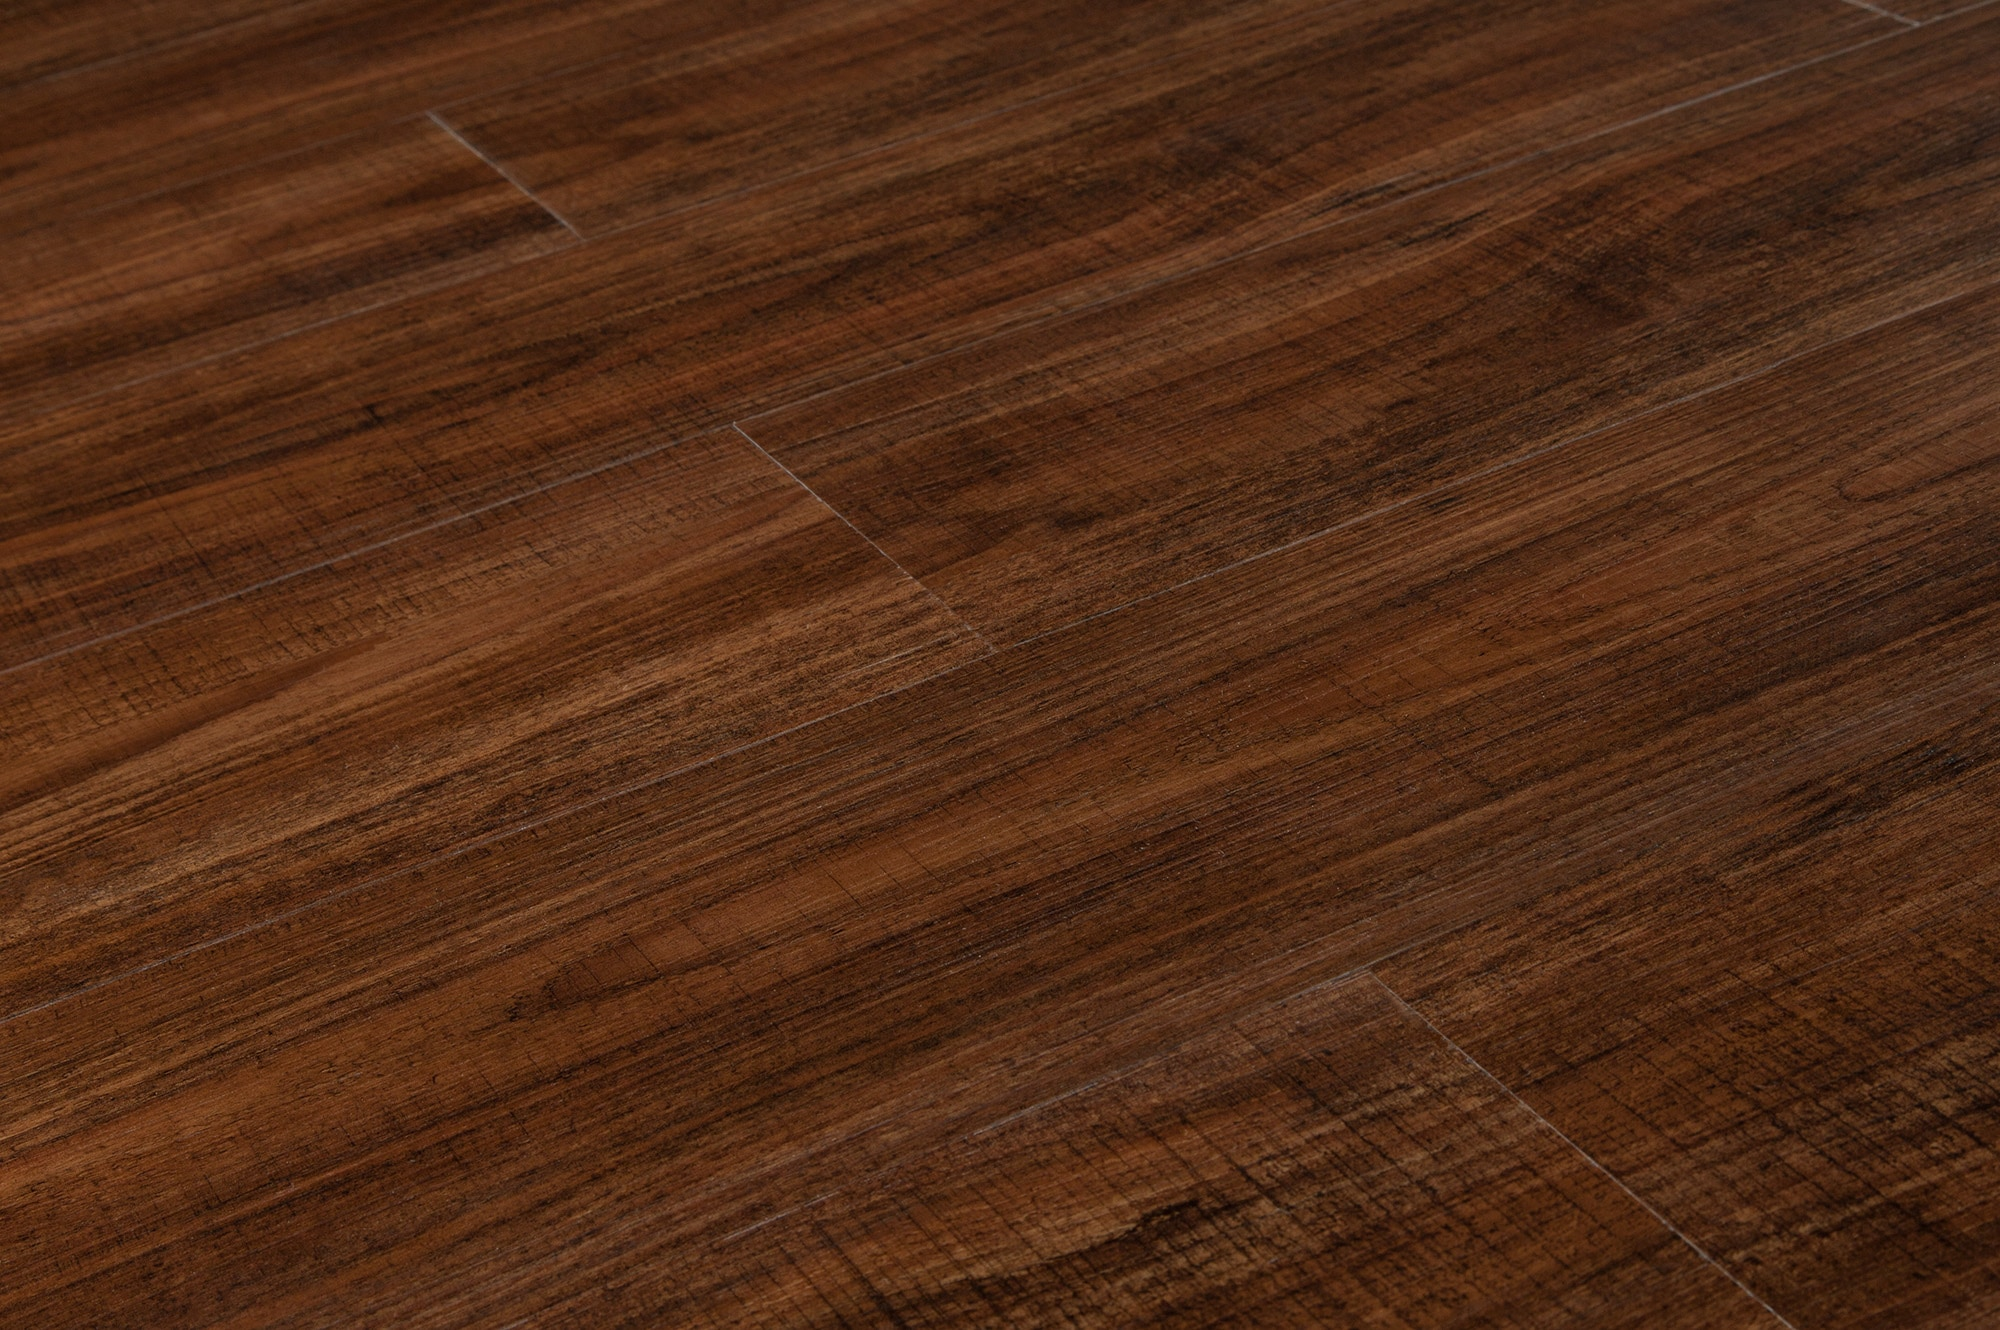 Vesdura vinyl planks 3mm pvc click lock exclusive for Pvc hardwood flooring